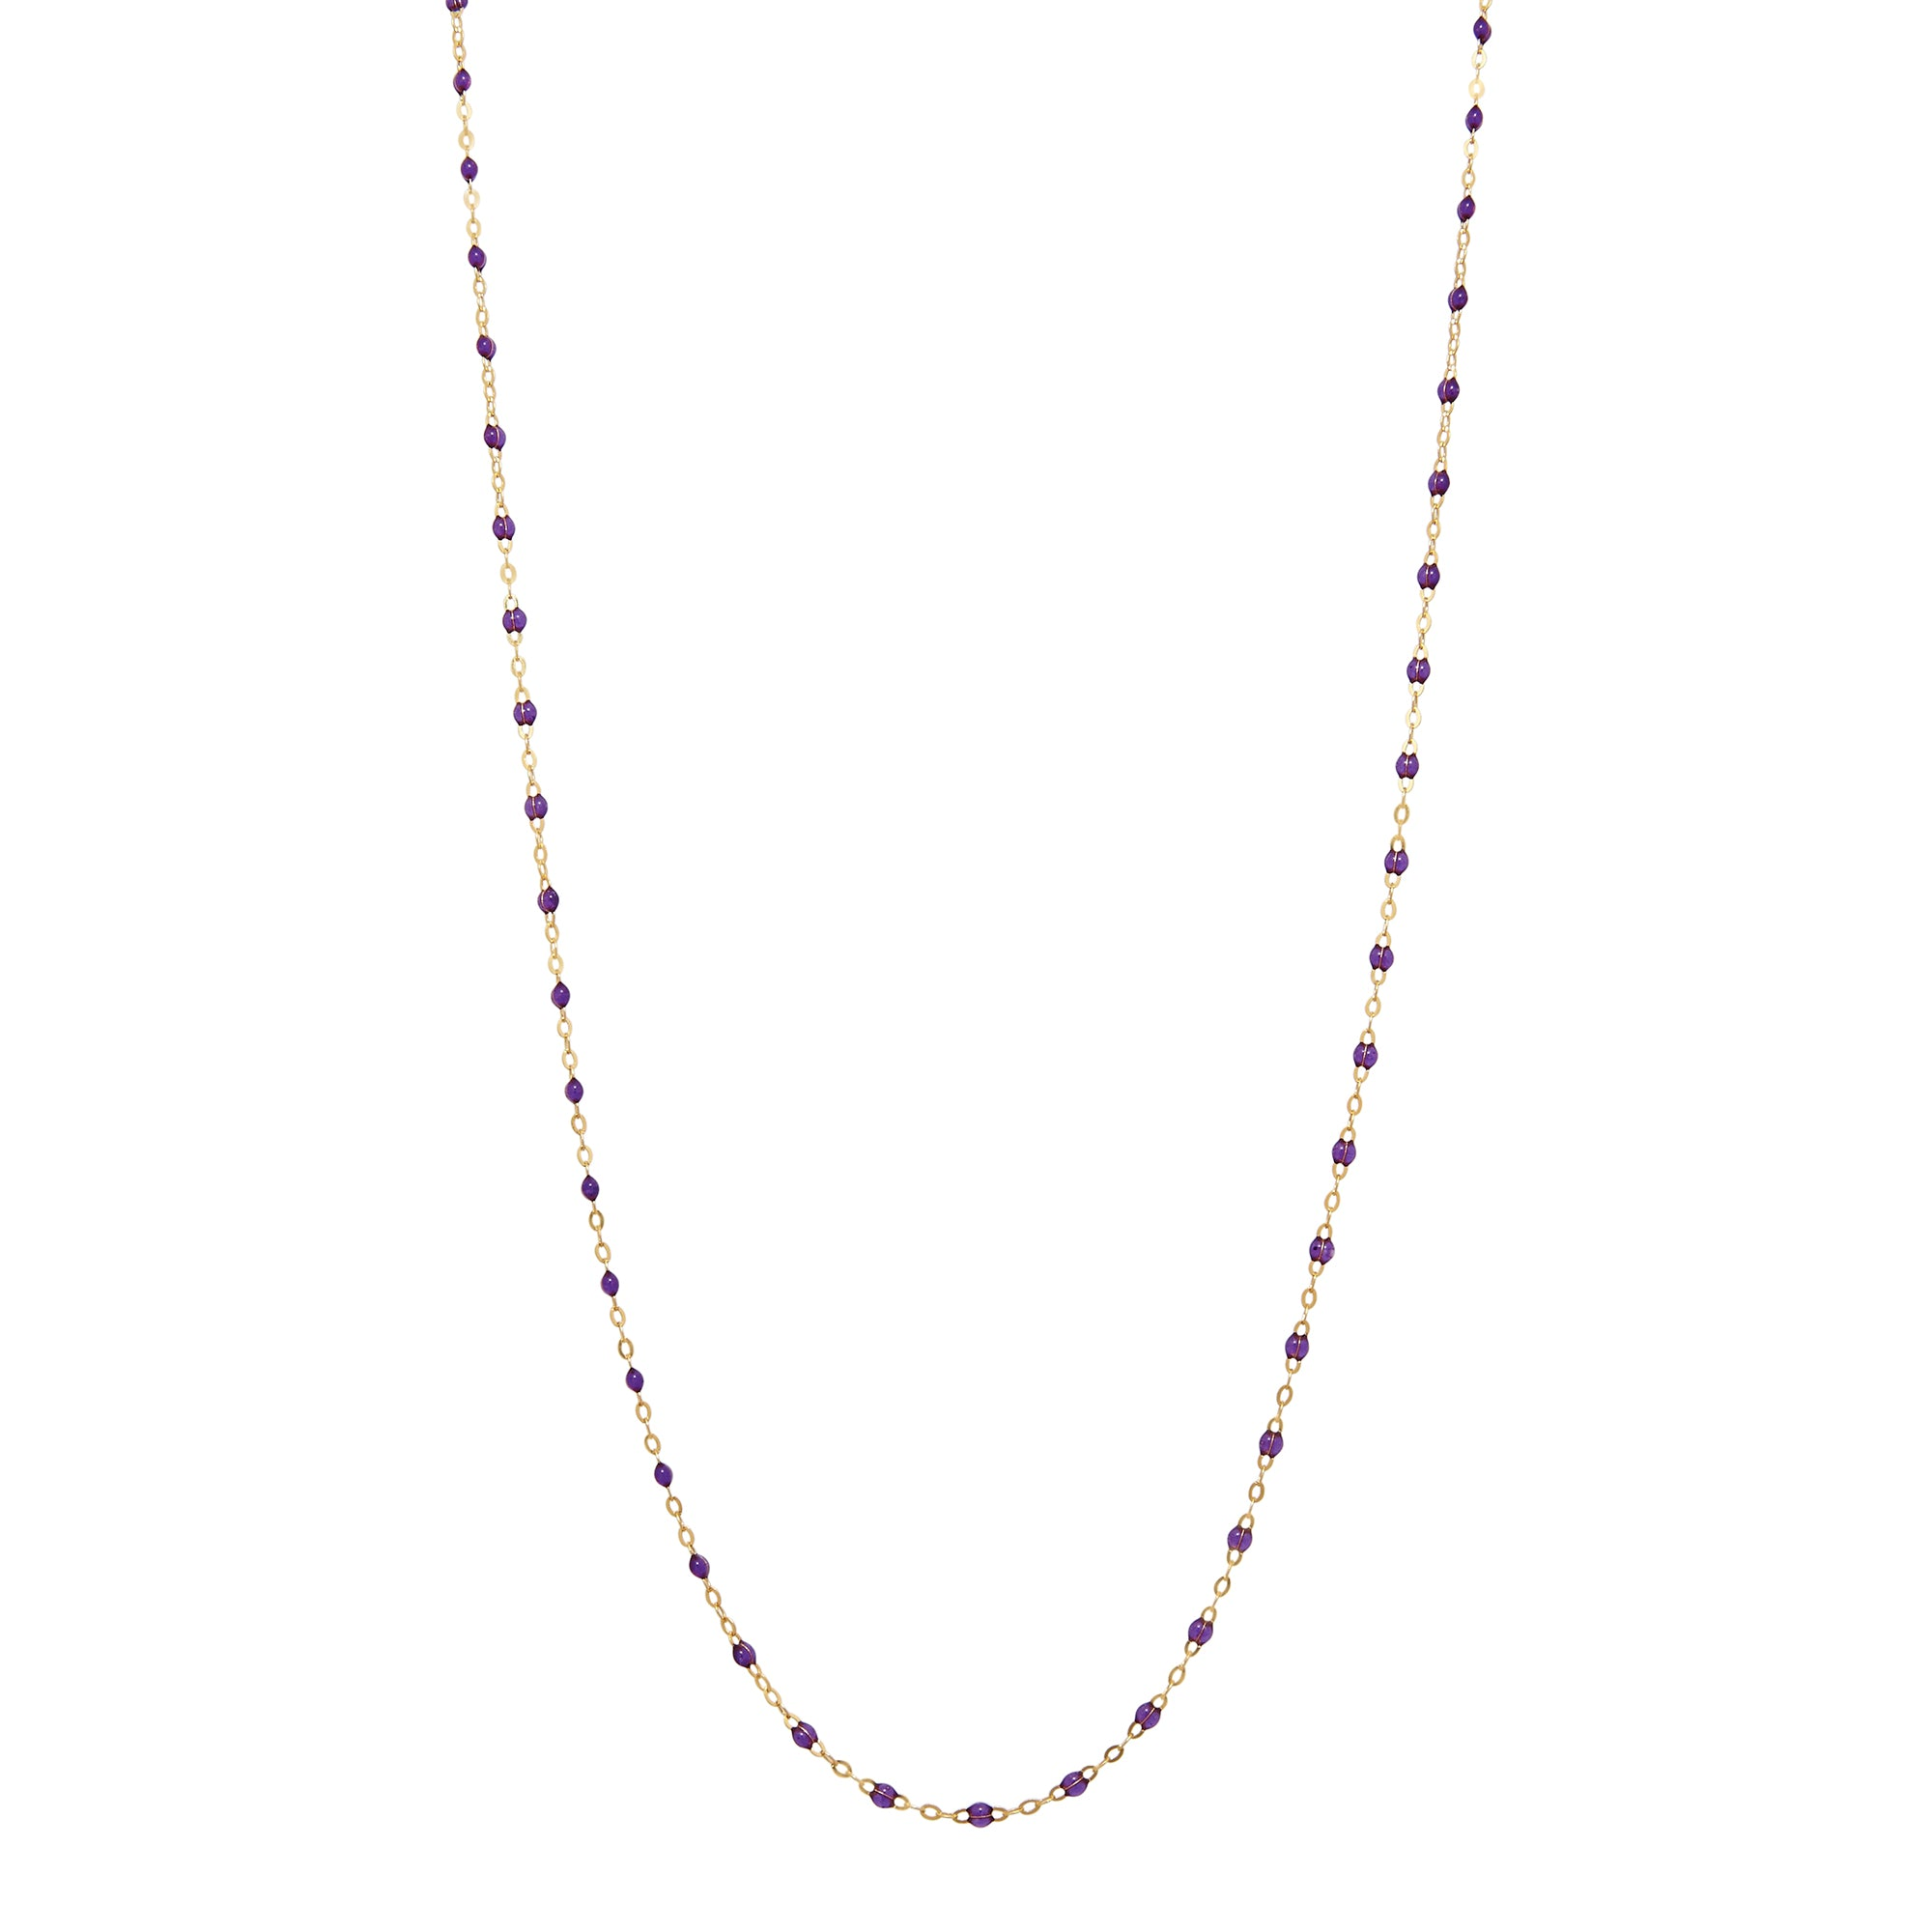 "20"" Gold & Resin Chain Necklace by Gigi Clozeau for Broken English Jewelry"